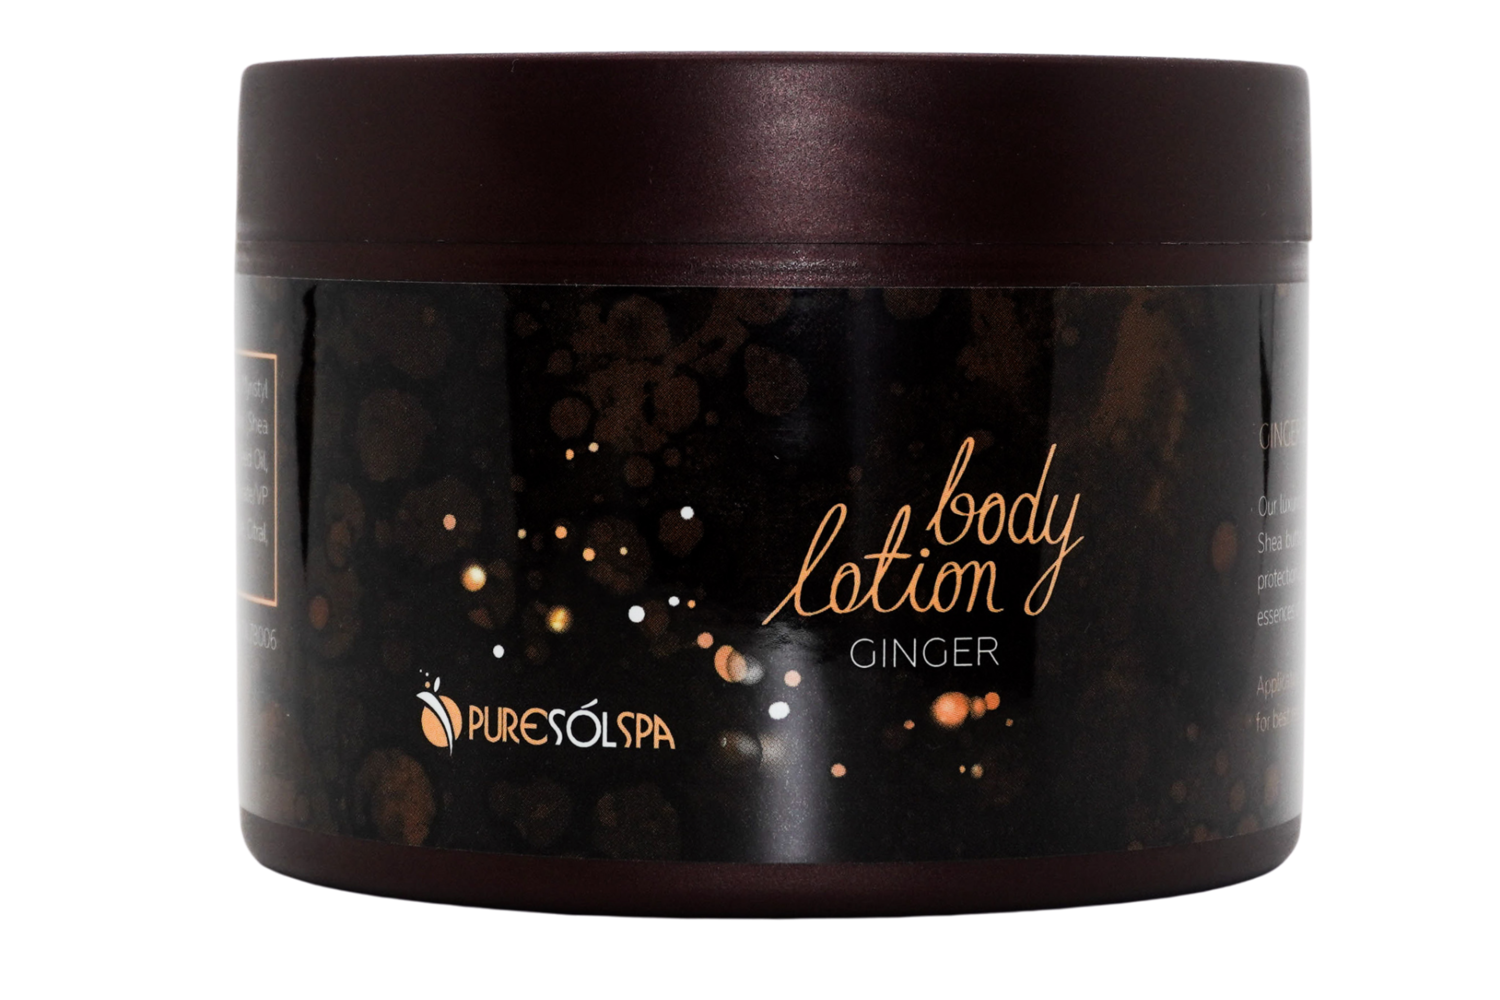 Ginger Body Lotion